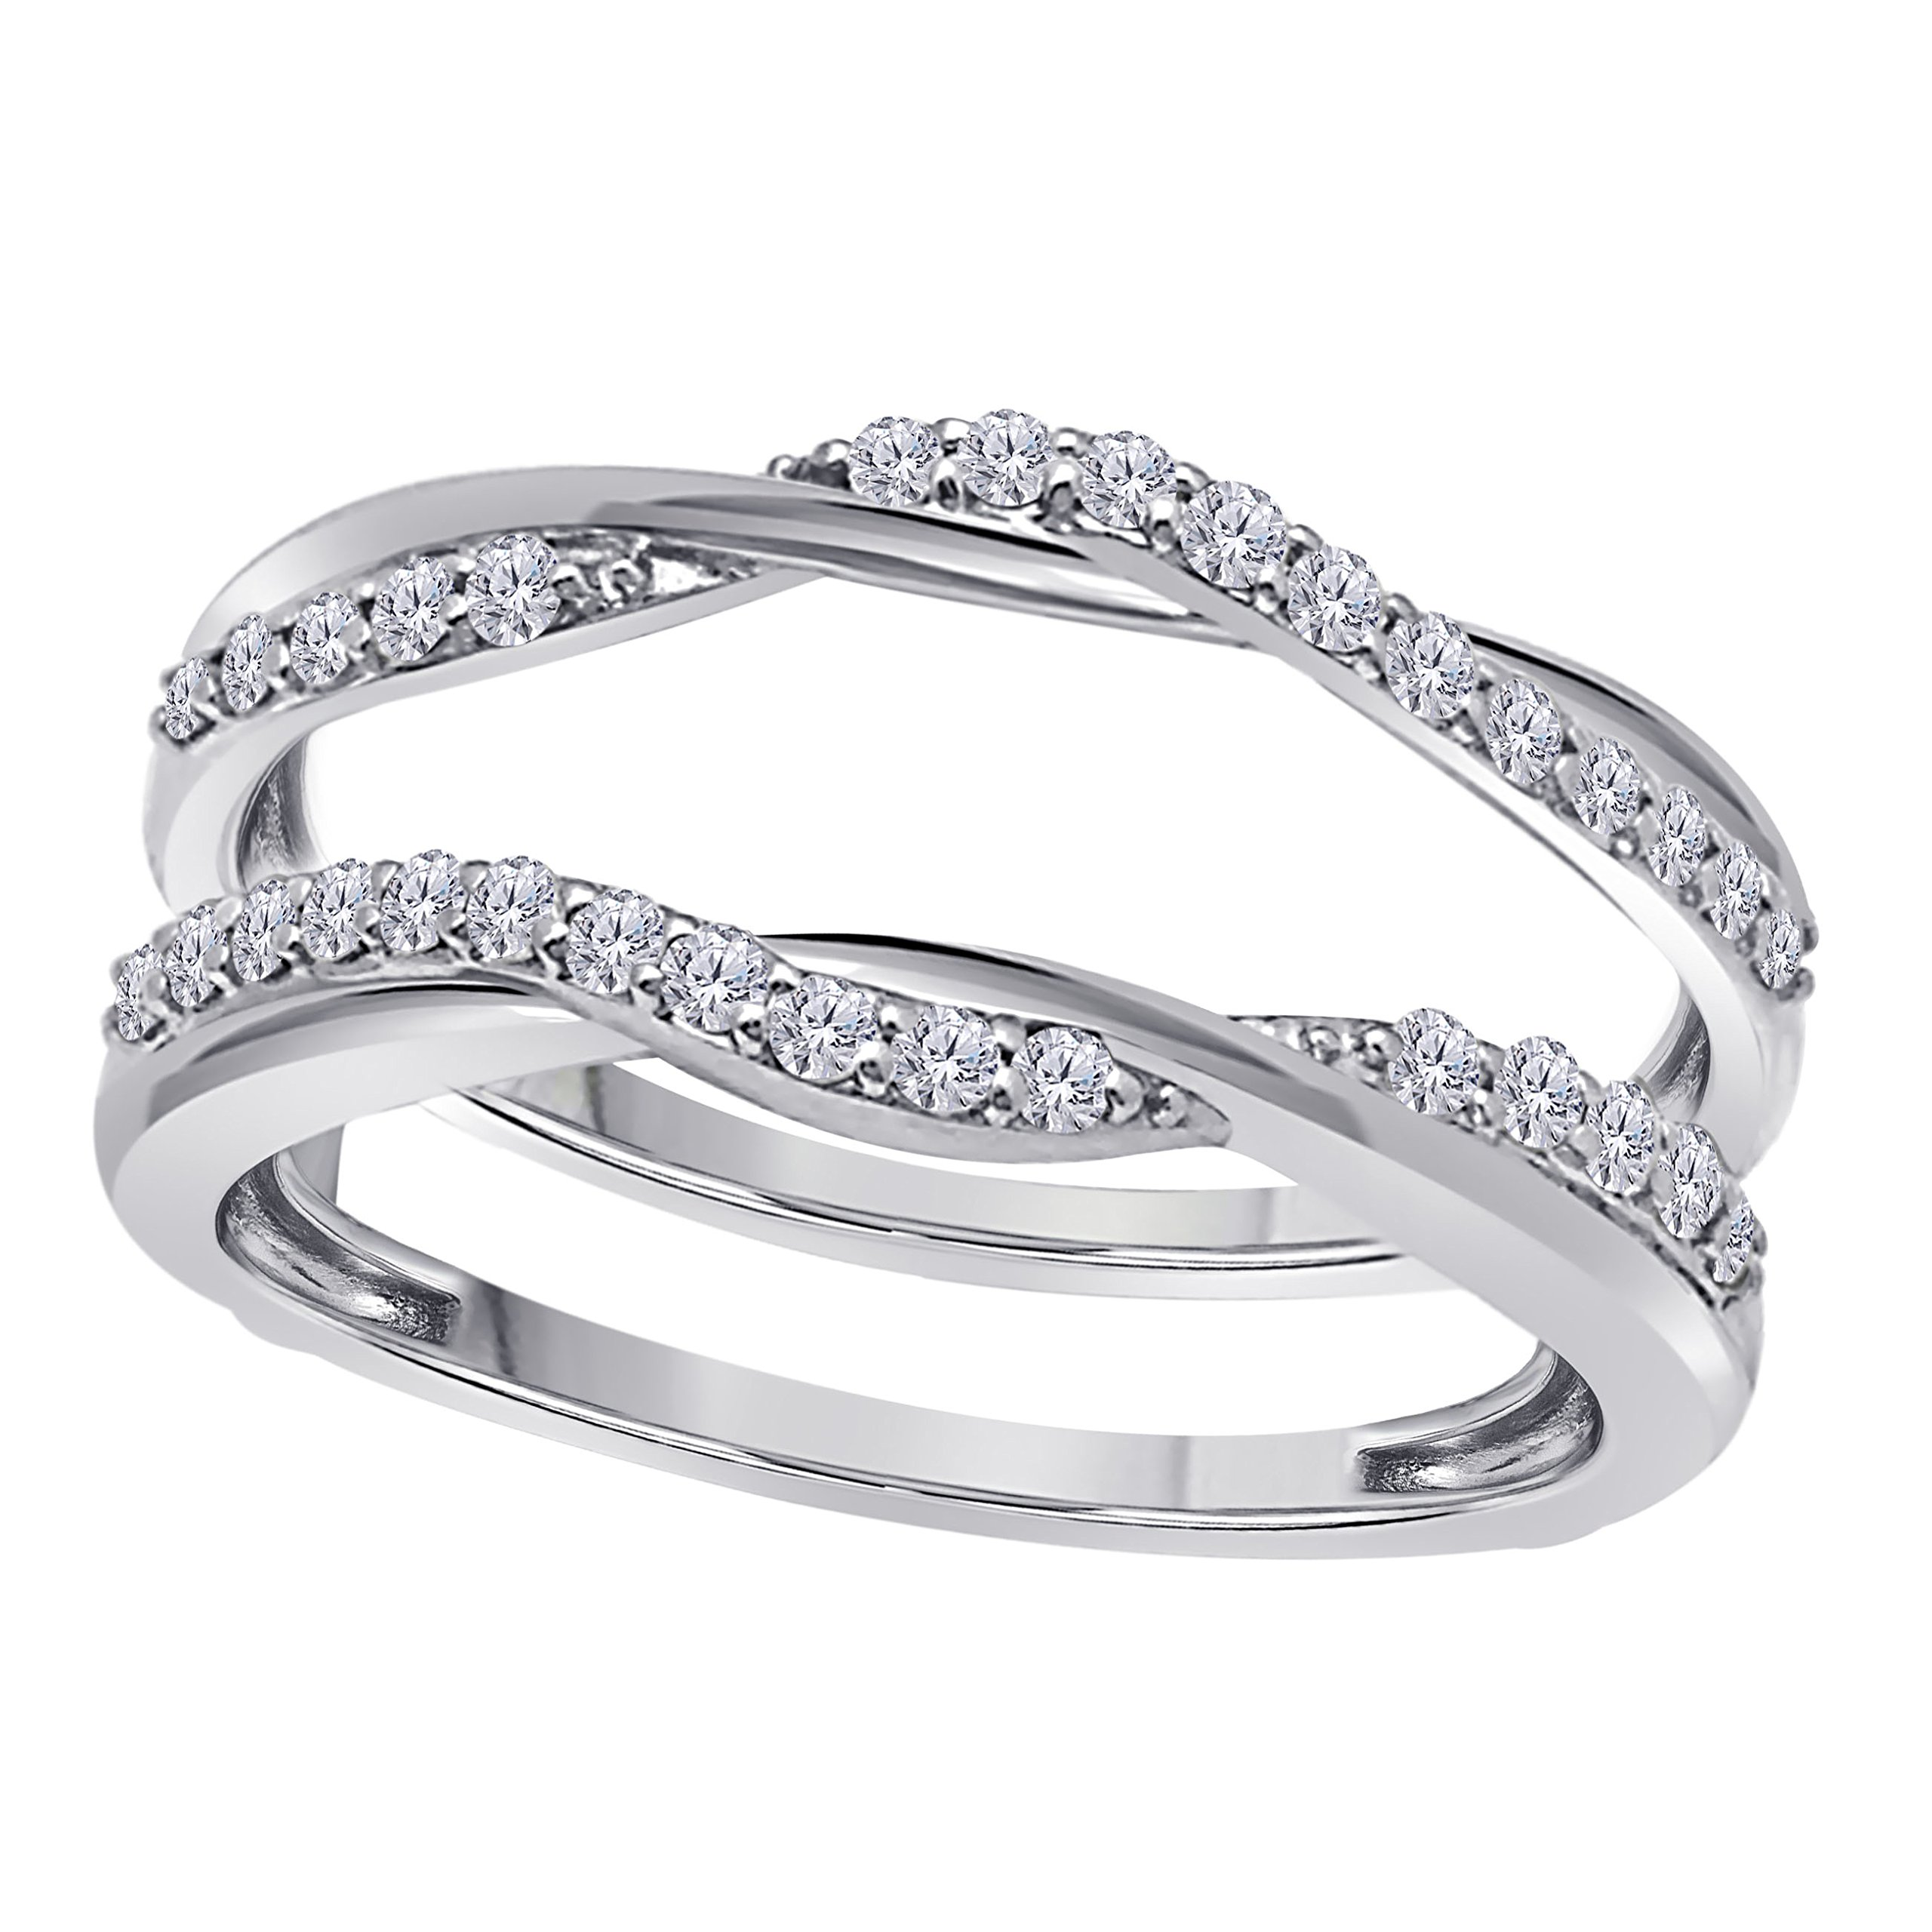 Sterling Silver Plated Delicate Bypass Infinity Style Vintage Wedding Ring Guard Enhancer with Cubic Zirconia (0.50 ct. tw.) by Star Retail (Image #1)